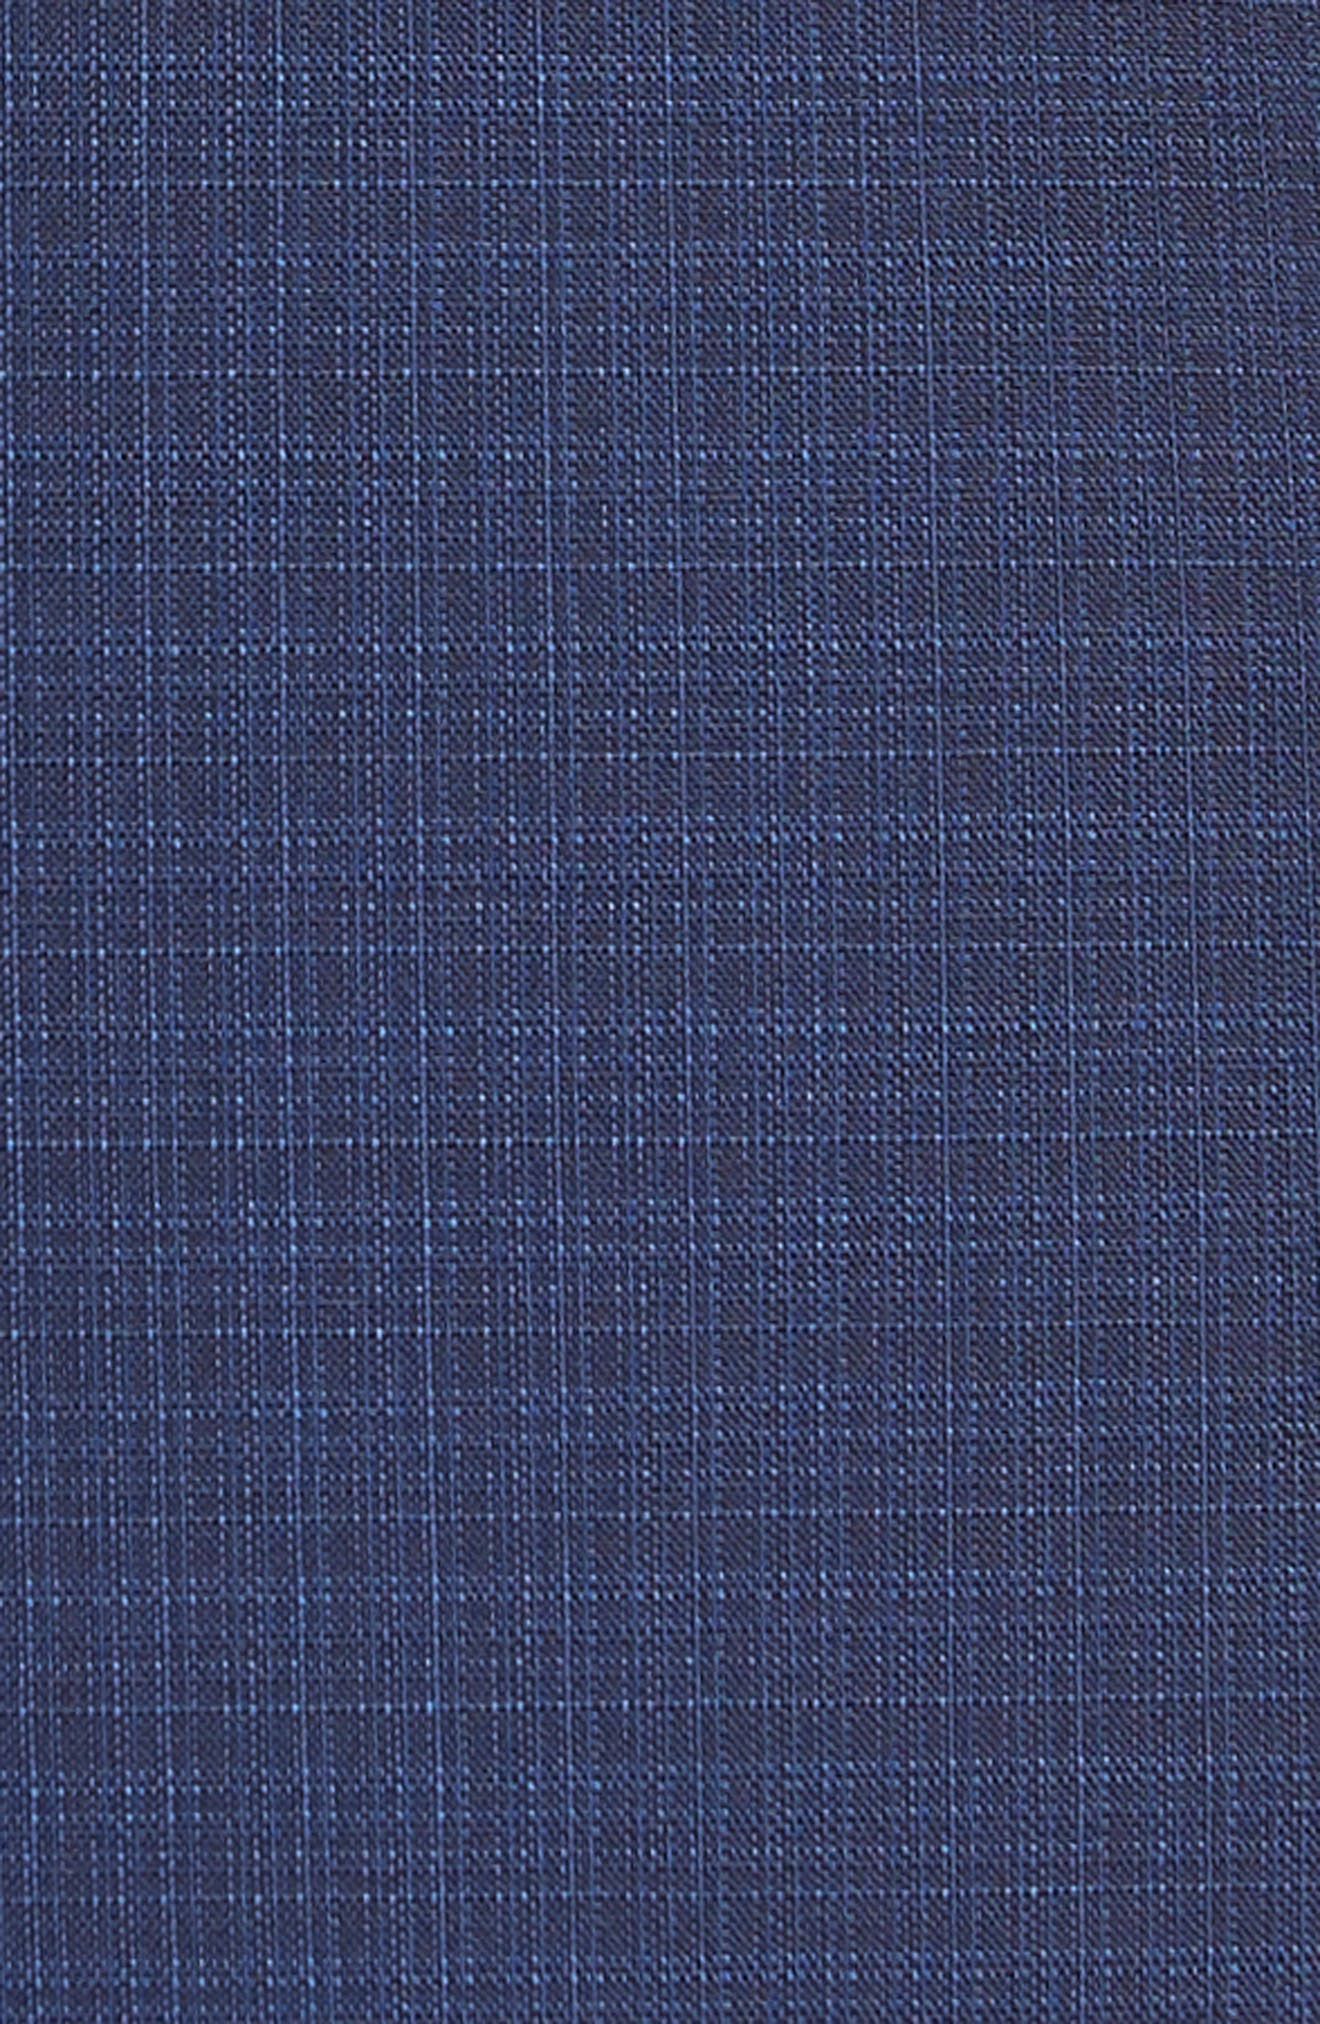 Huge/Genius Trim Fit Plaid Wool Suit,                             Alternate thumbnail 7, color,                             NAVY